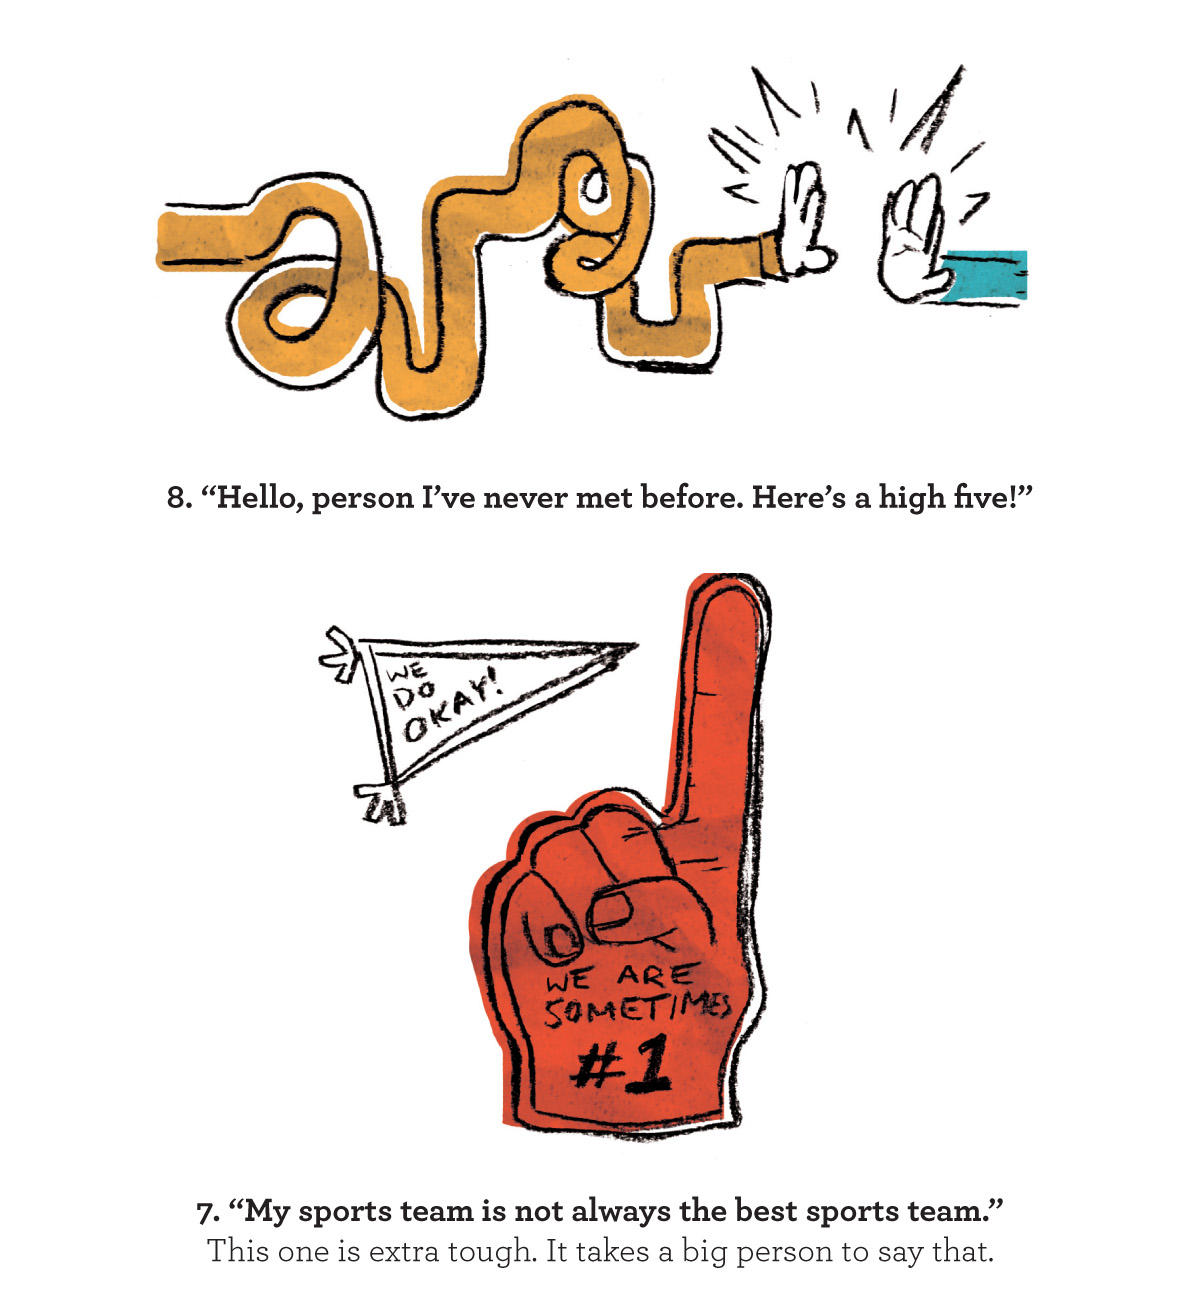 #8. Hello person I've never met before. Here's a high five! and #7 My sports team is not always the best sports team. This one is extra tough it takes a big person to say that. Editorial illustrations by russell shaw for kid president book